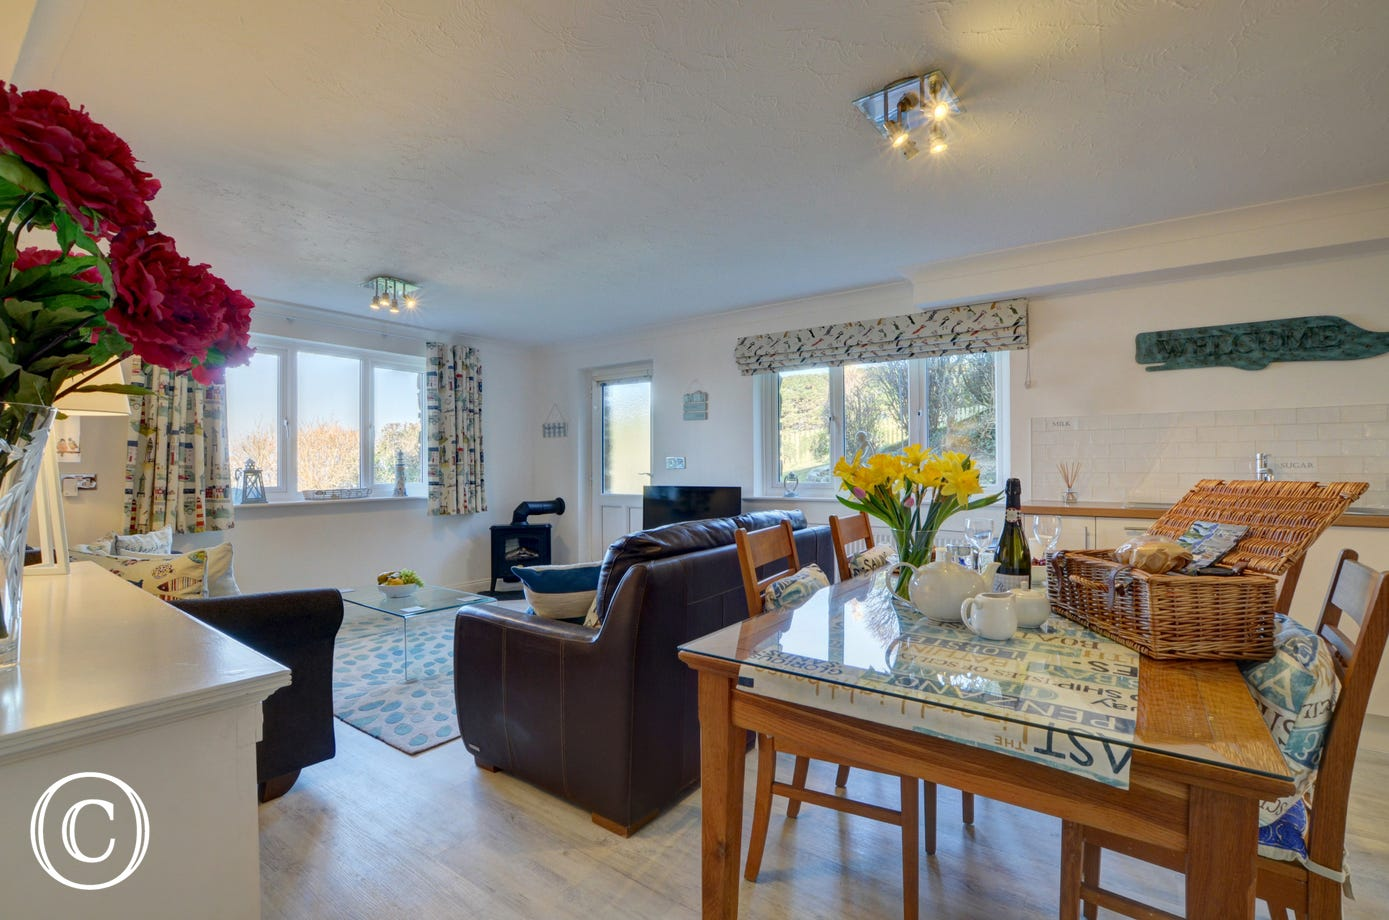 The living area is bright and spacious and has everything you need for an enjoyable stay